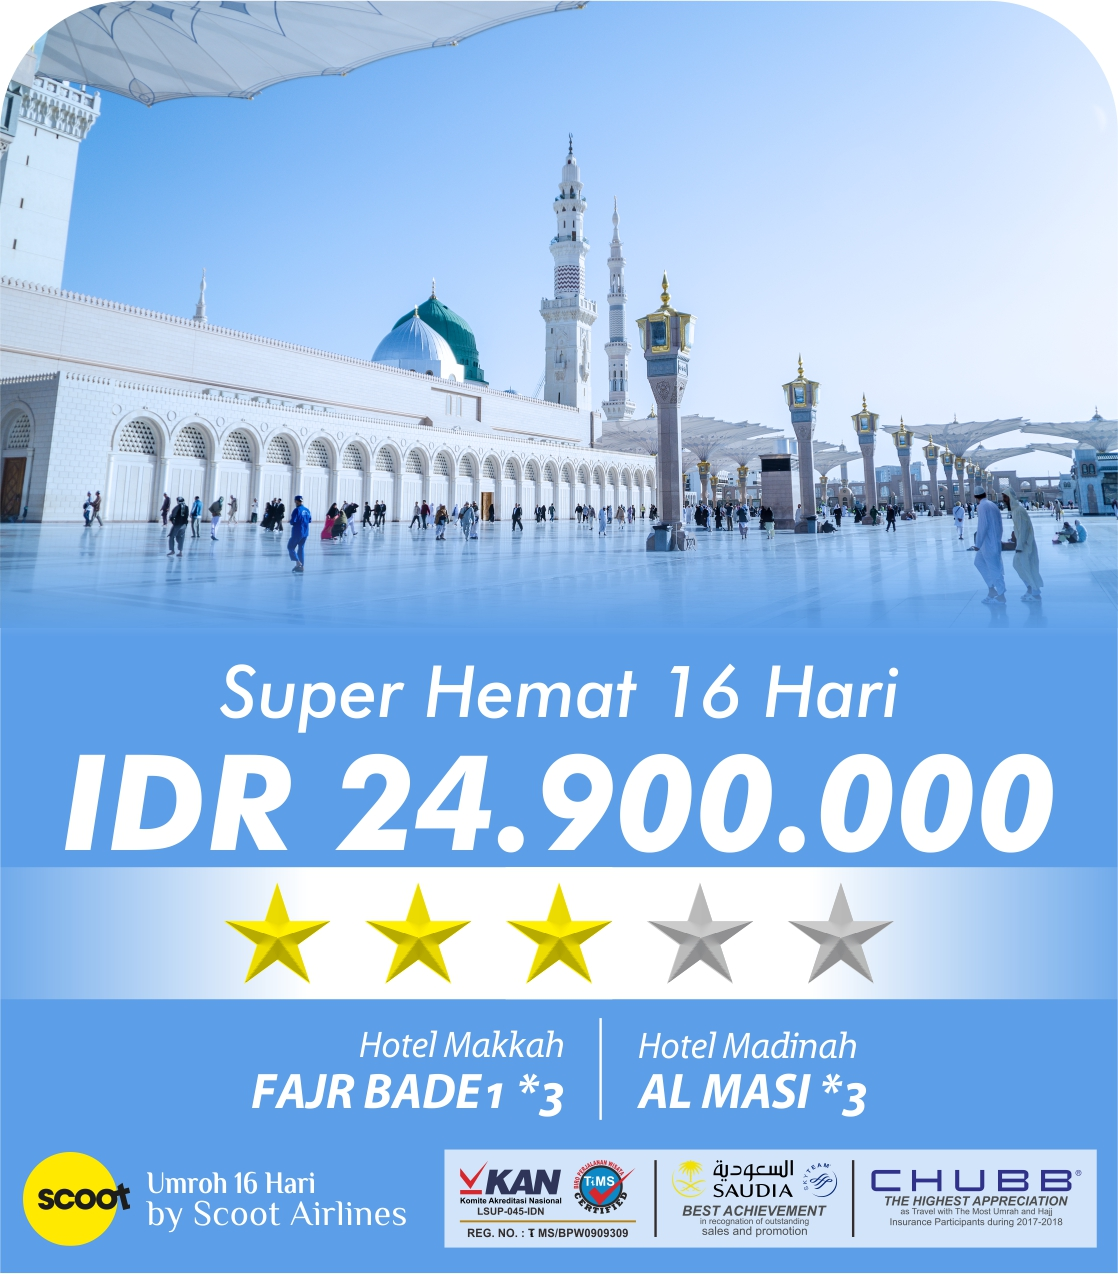 Super Hemat 16 Hari Scoot Airlines